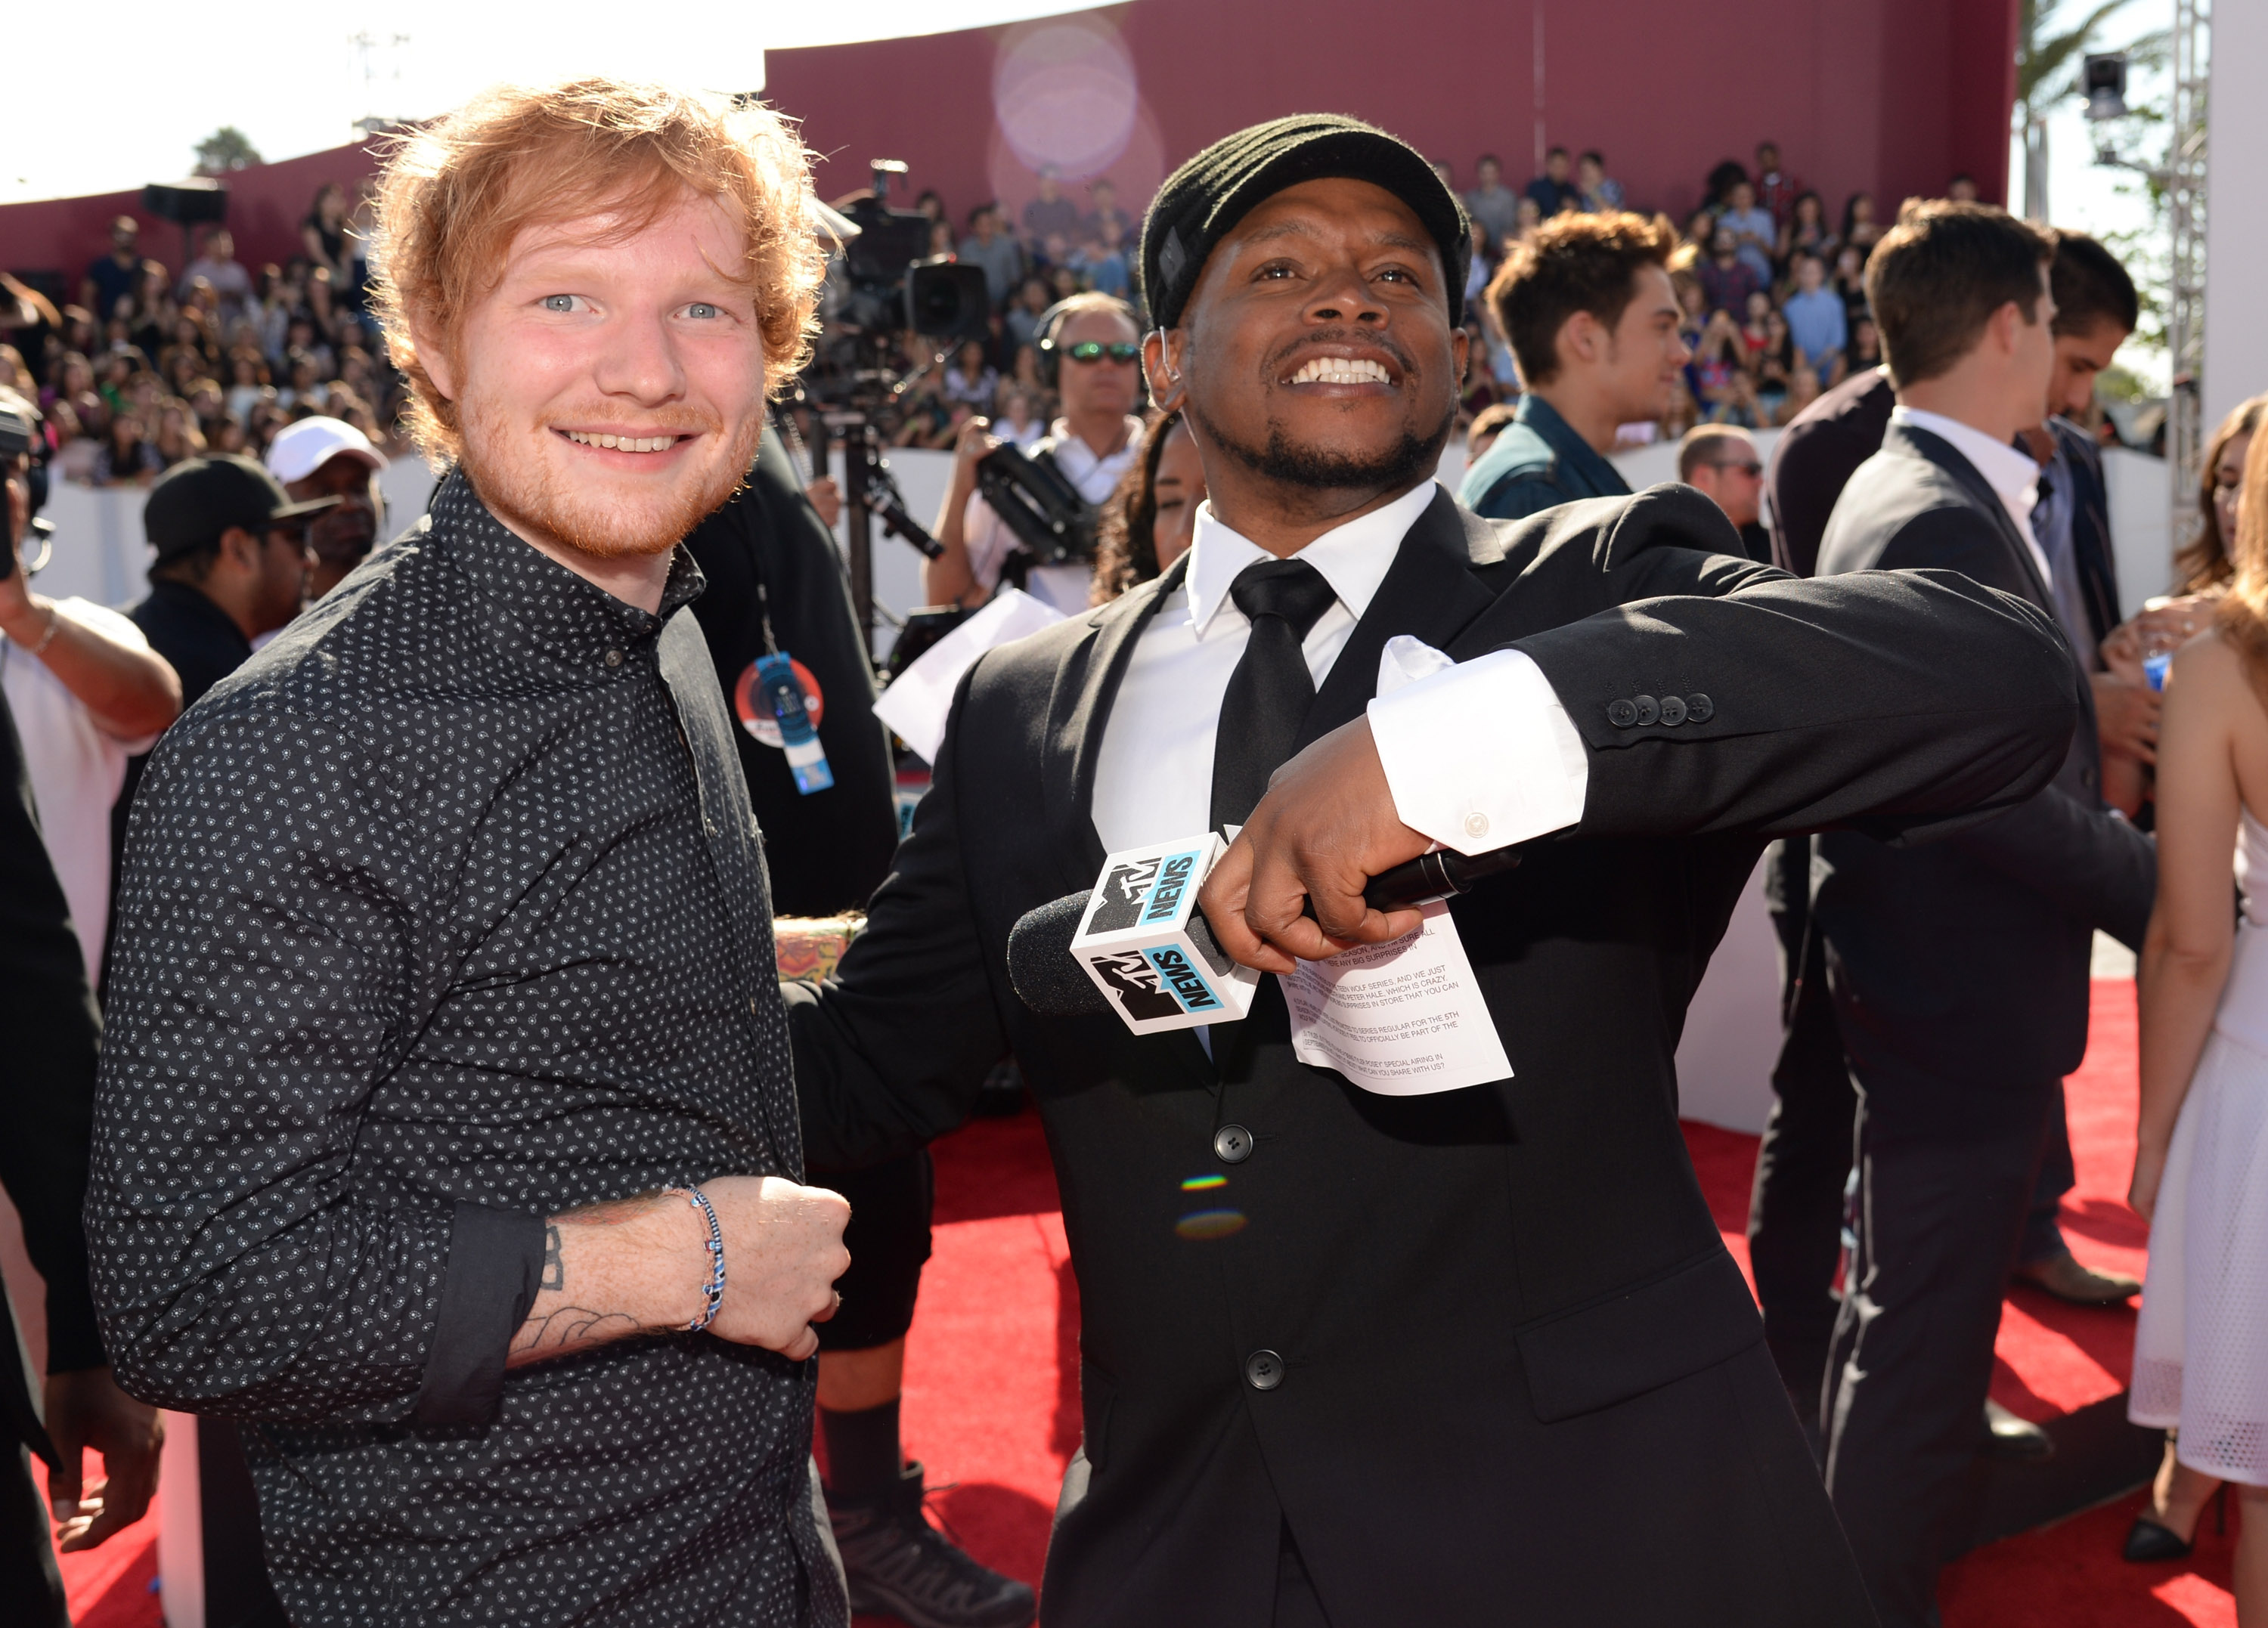 Ed Sheeran and Sway attend the 2014 MTV Video Music Awards at The Forum on August 24, 2014 in Inglewood, California.